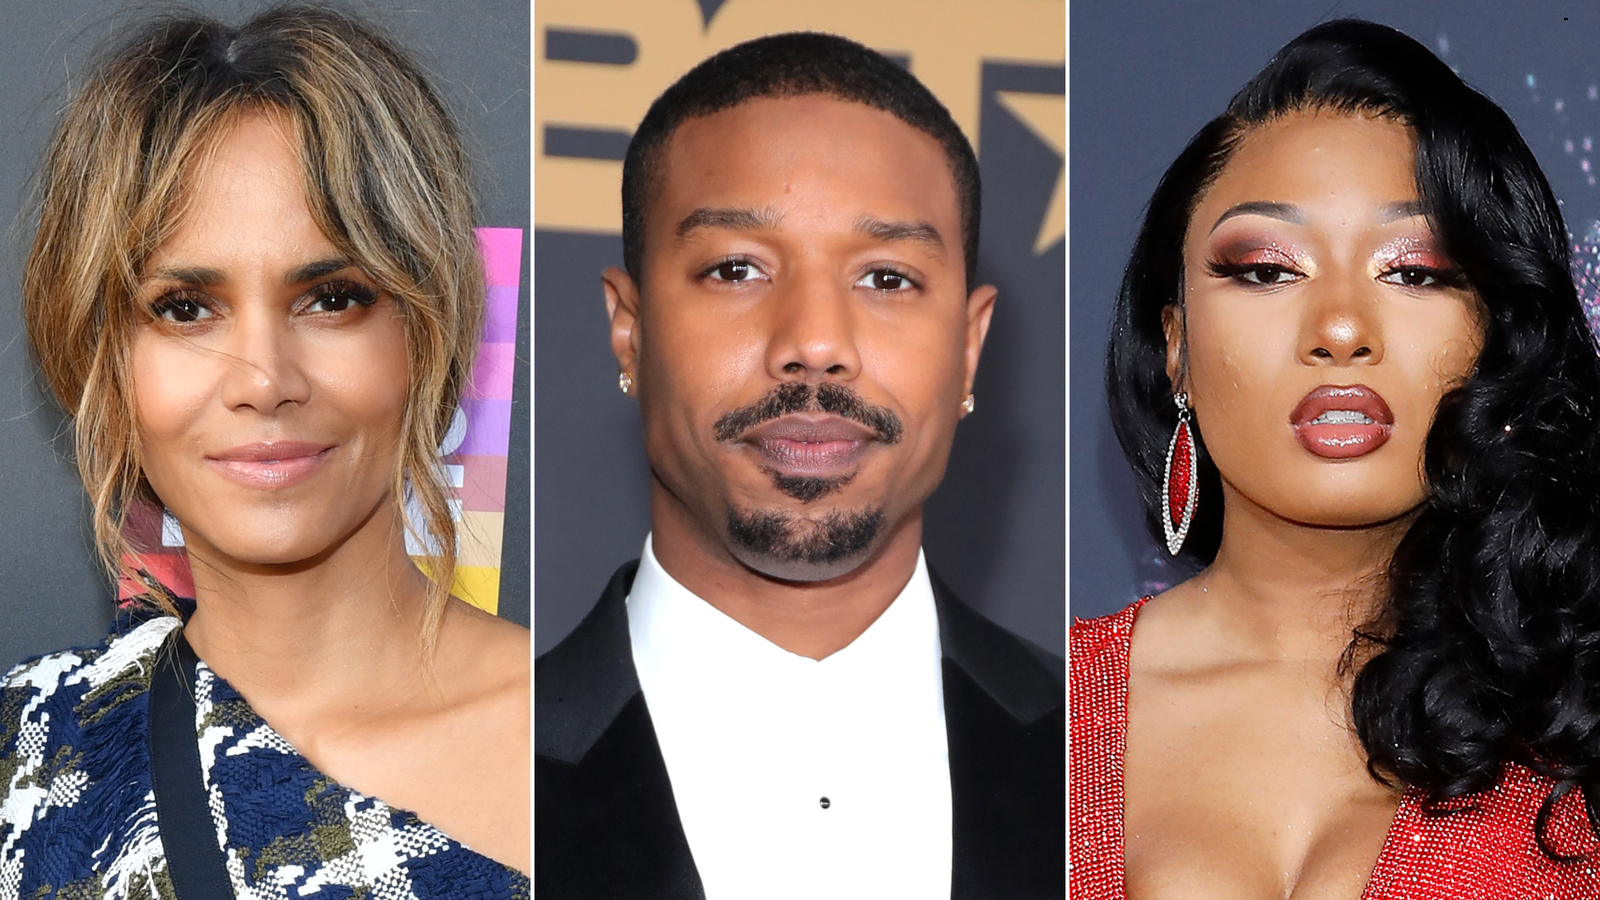 Halle Berry and Michael B. Jordan offer support to Megan Thee Stallion after she reveals details of shooting